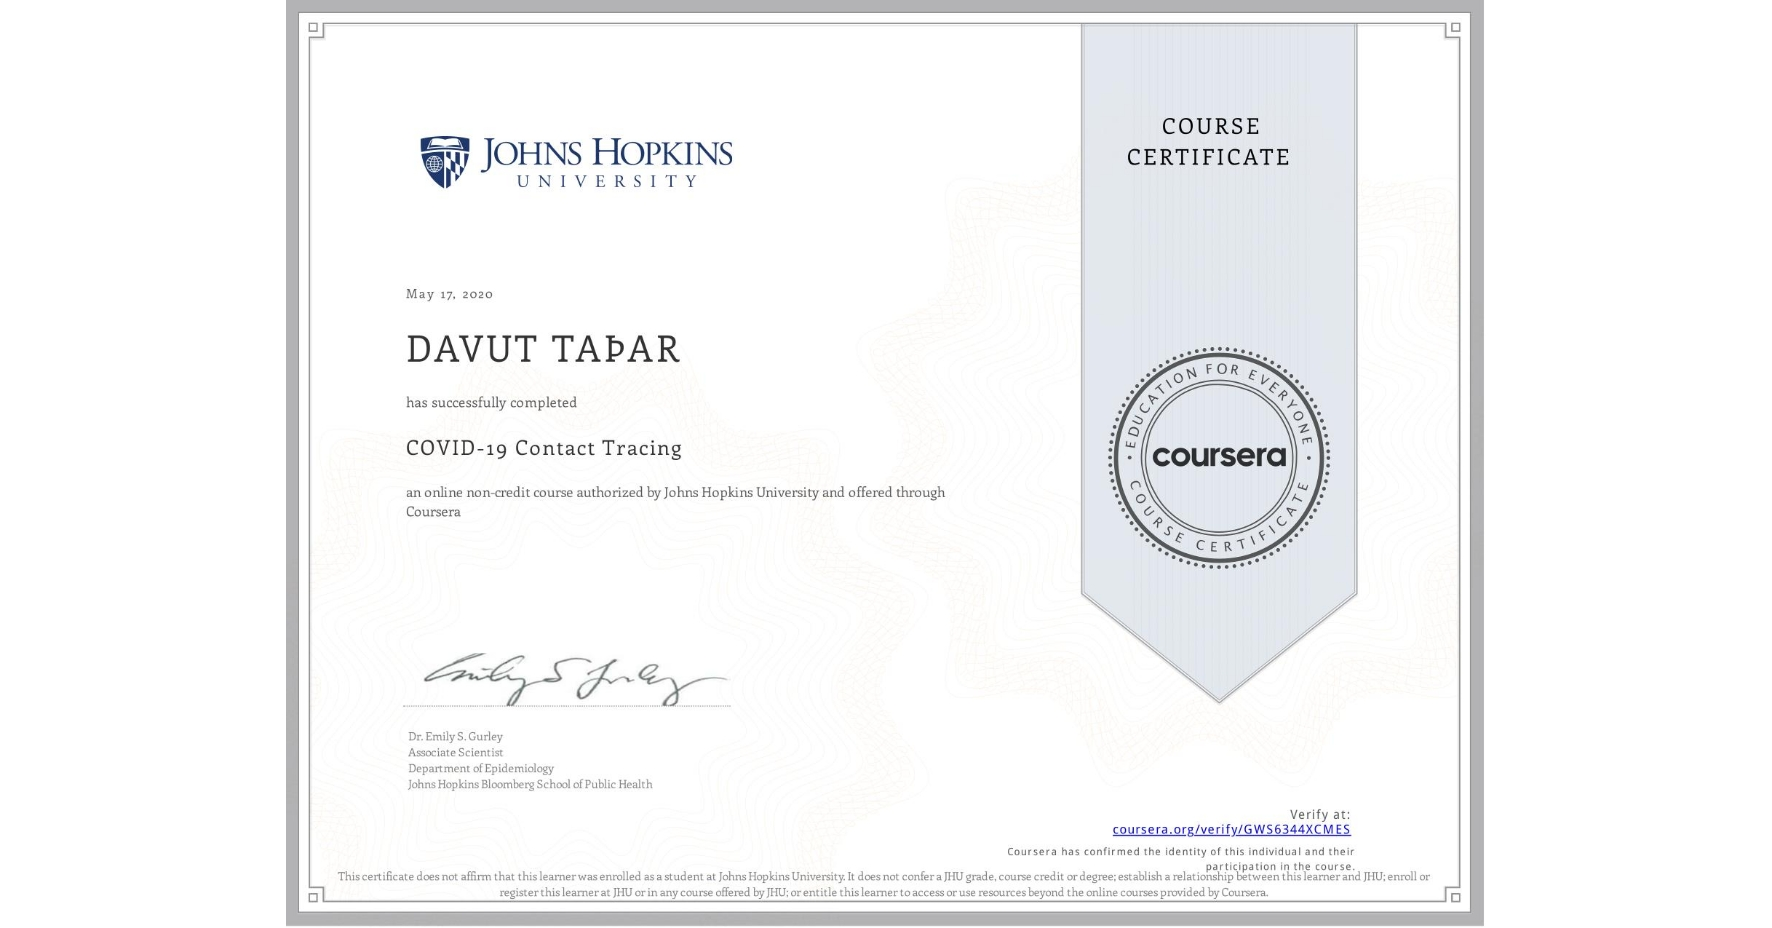 View certificate for DAVUT EMRE  TAŞAR, COVID-19 Contact Tracing, an online non-credit course authorized by Johns Hopkins University and offered through Coursera